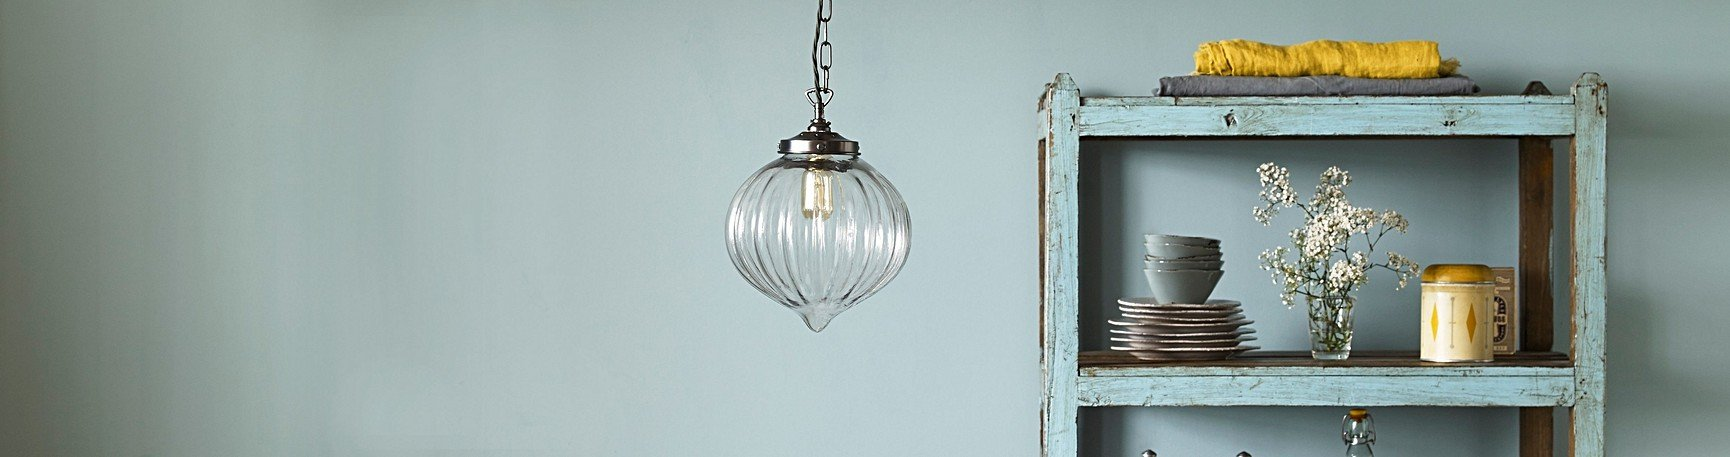 Our designer pendant lights lighting pendant lights aloadofball Choice Image